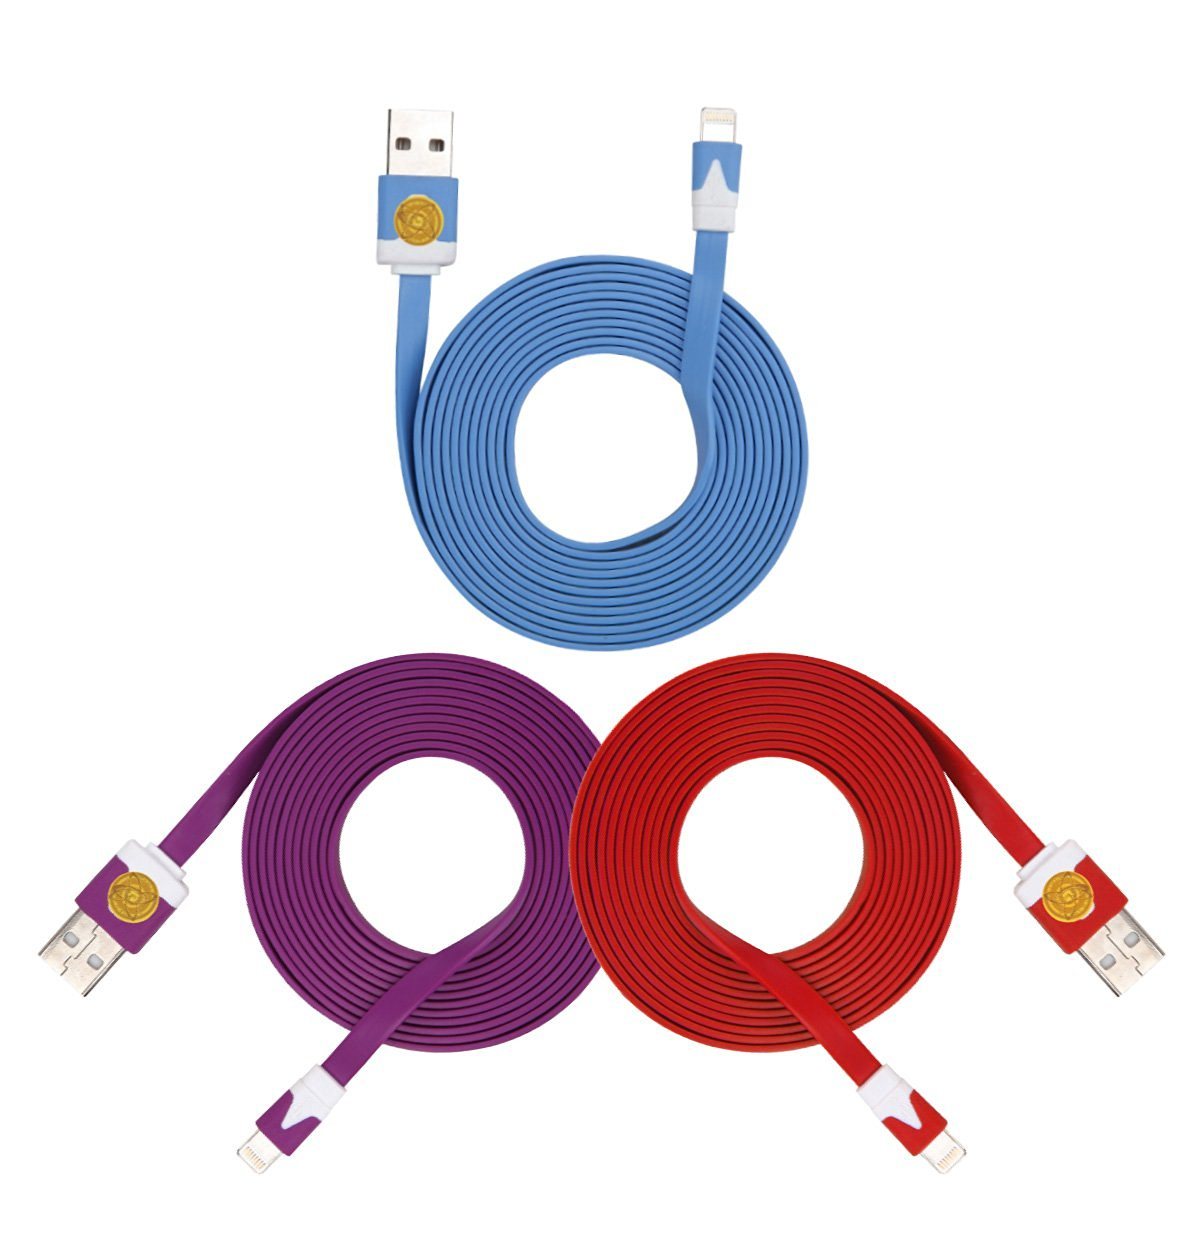 2M Heavy Duty Flat Noodle Lightning USB Cable for Apple iPhone 6,6S -Ple Blu Red